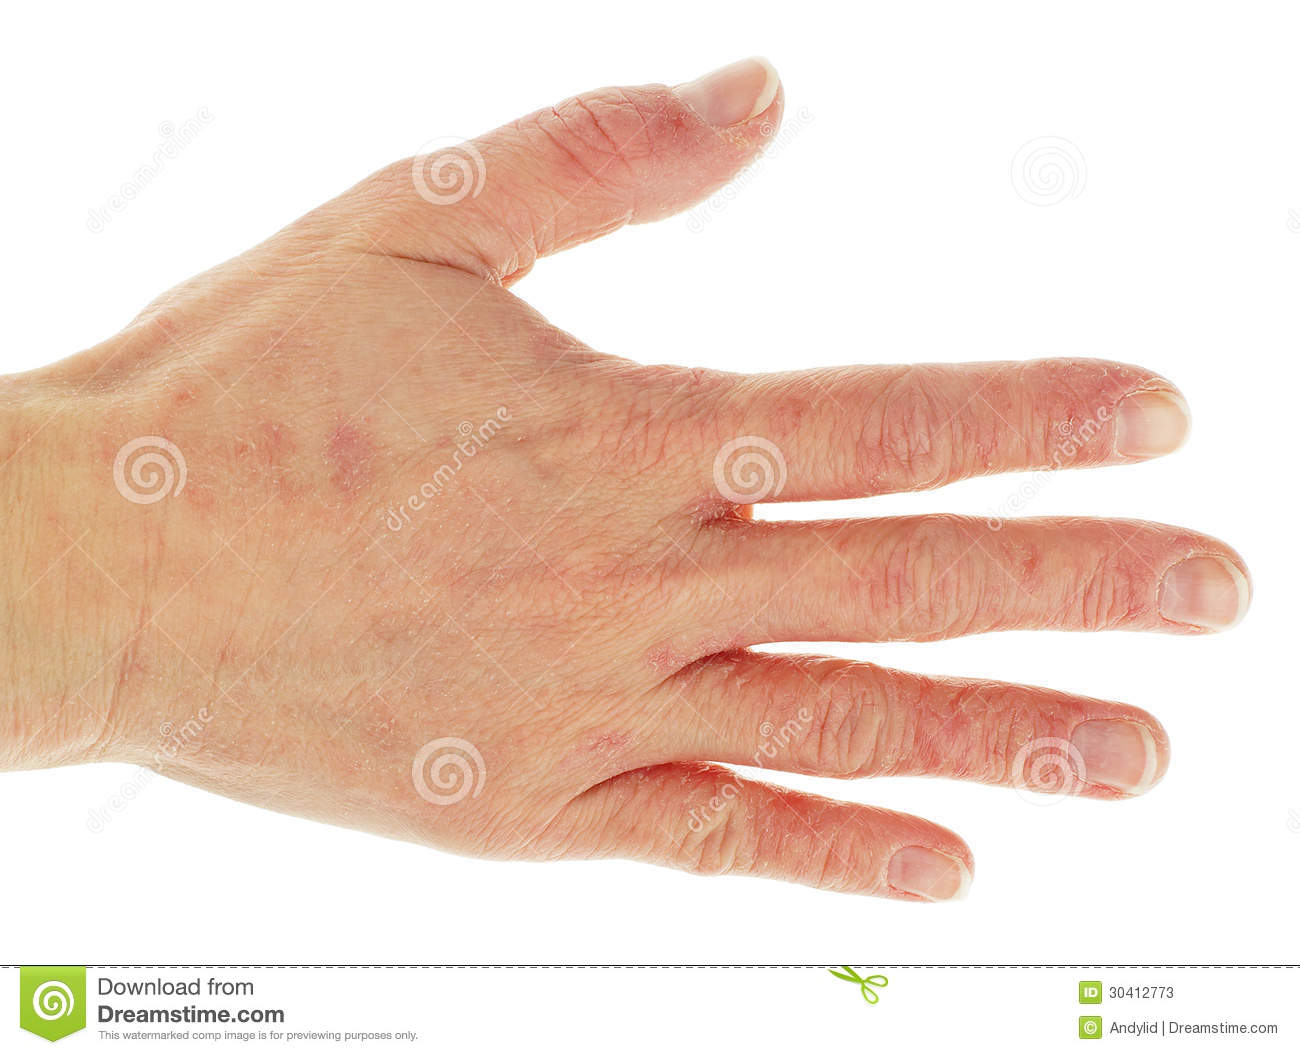 how to stop eczema itching on hands